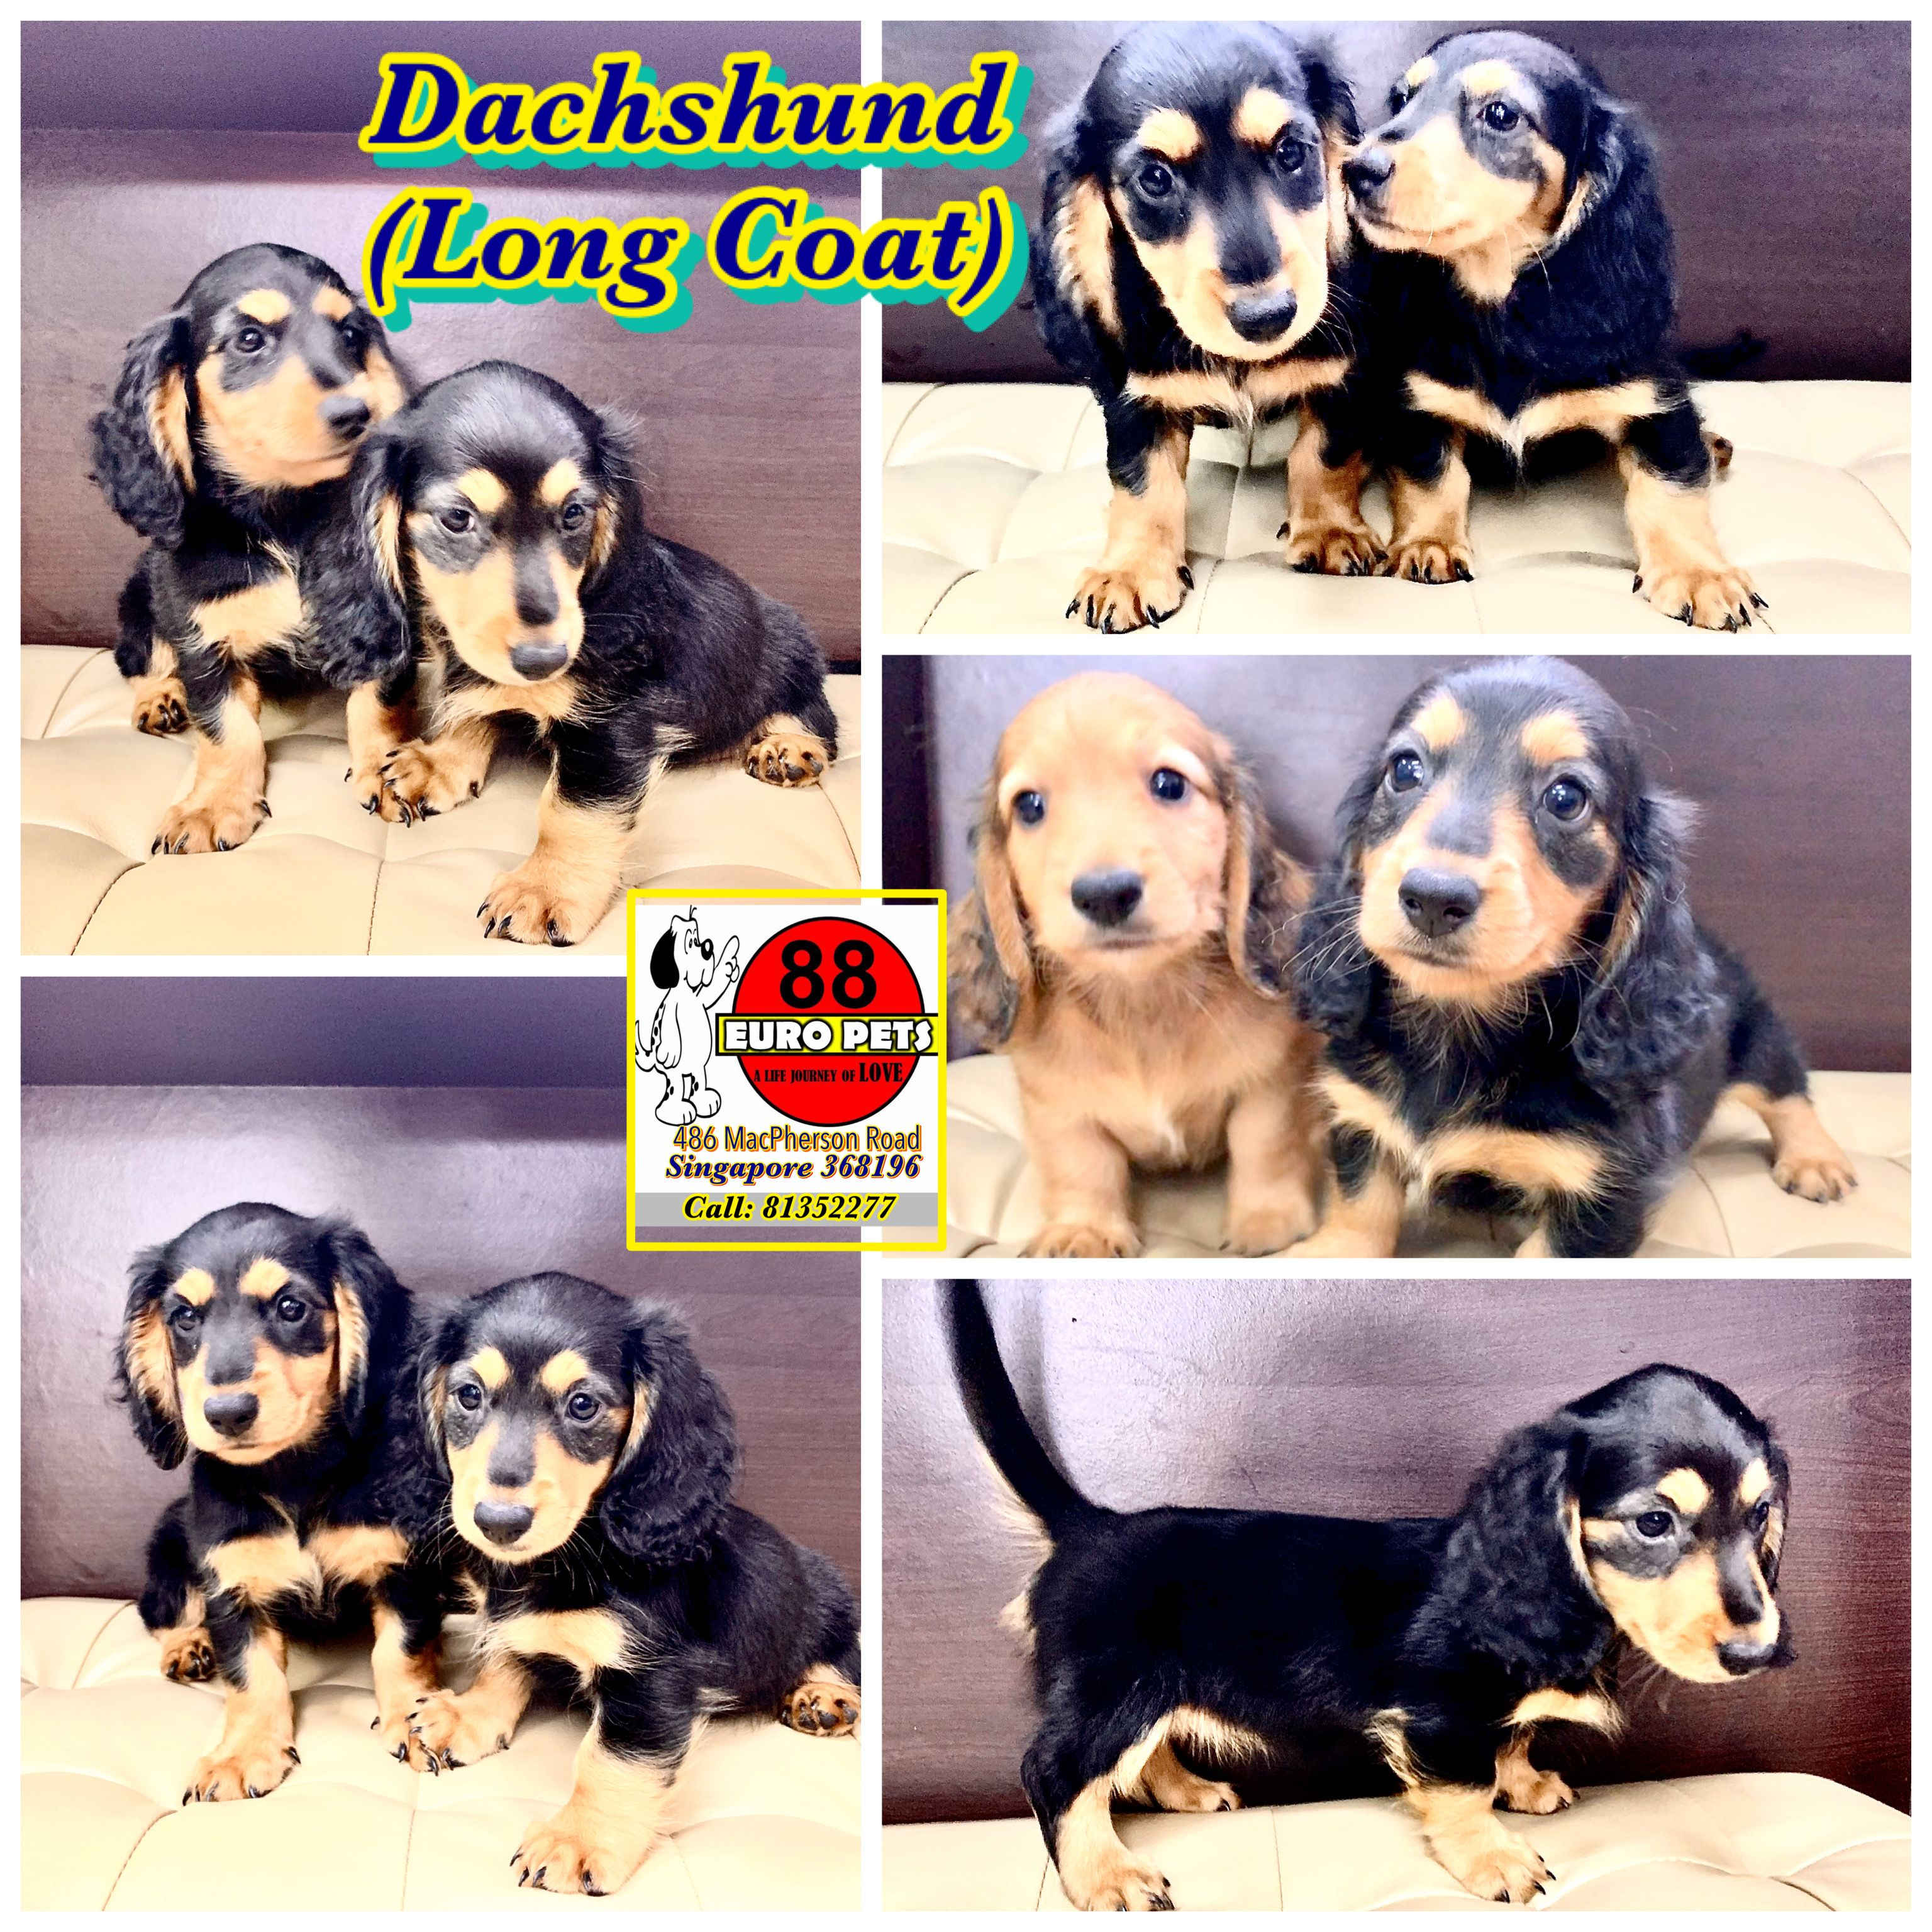 Mini Dachshund Rare Long Coat Purebreed 4 488 Female Call